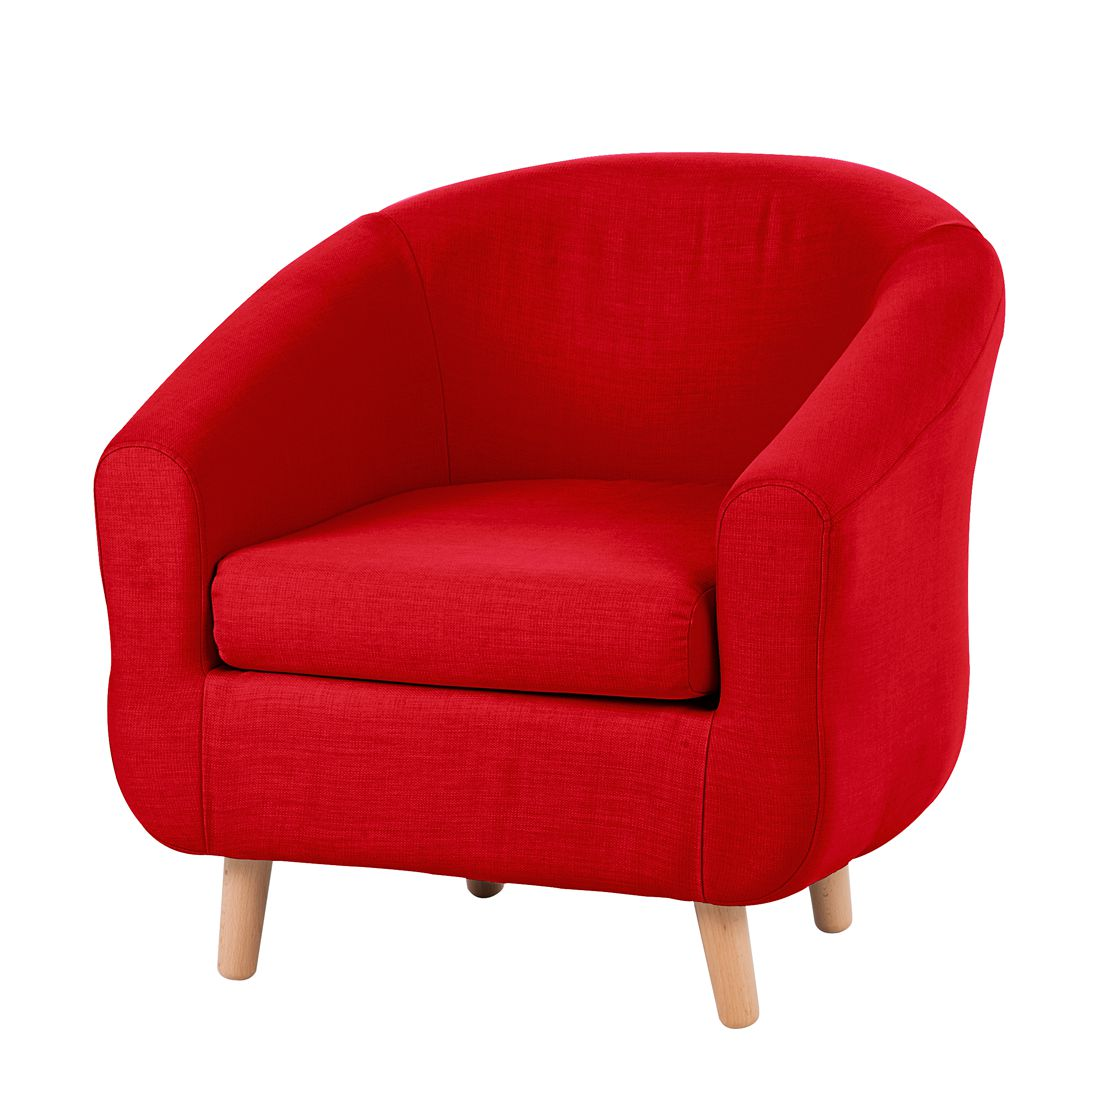 Fauteuil Little - Tissu rouge, mooved